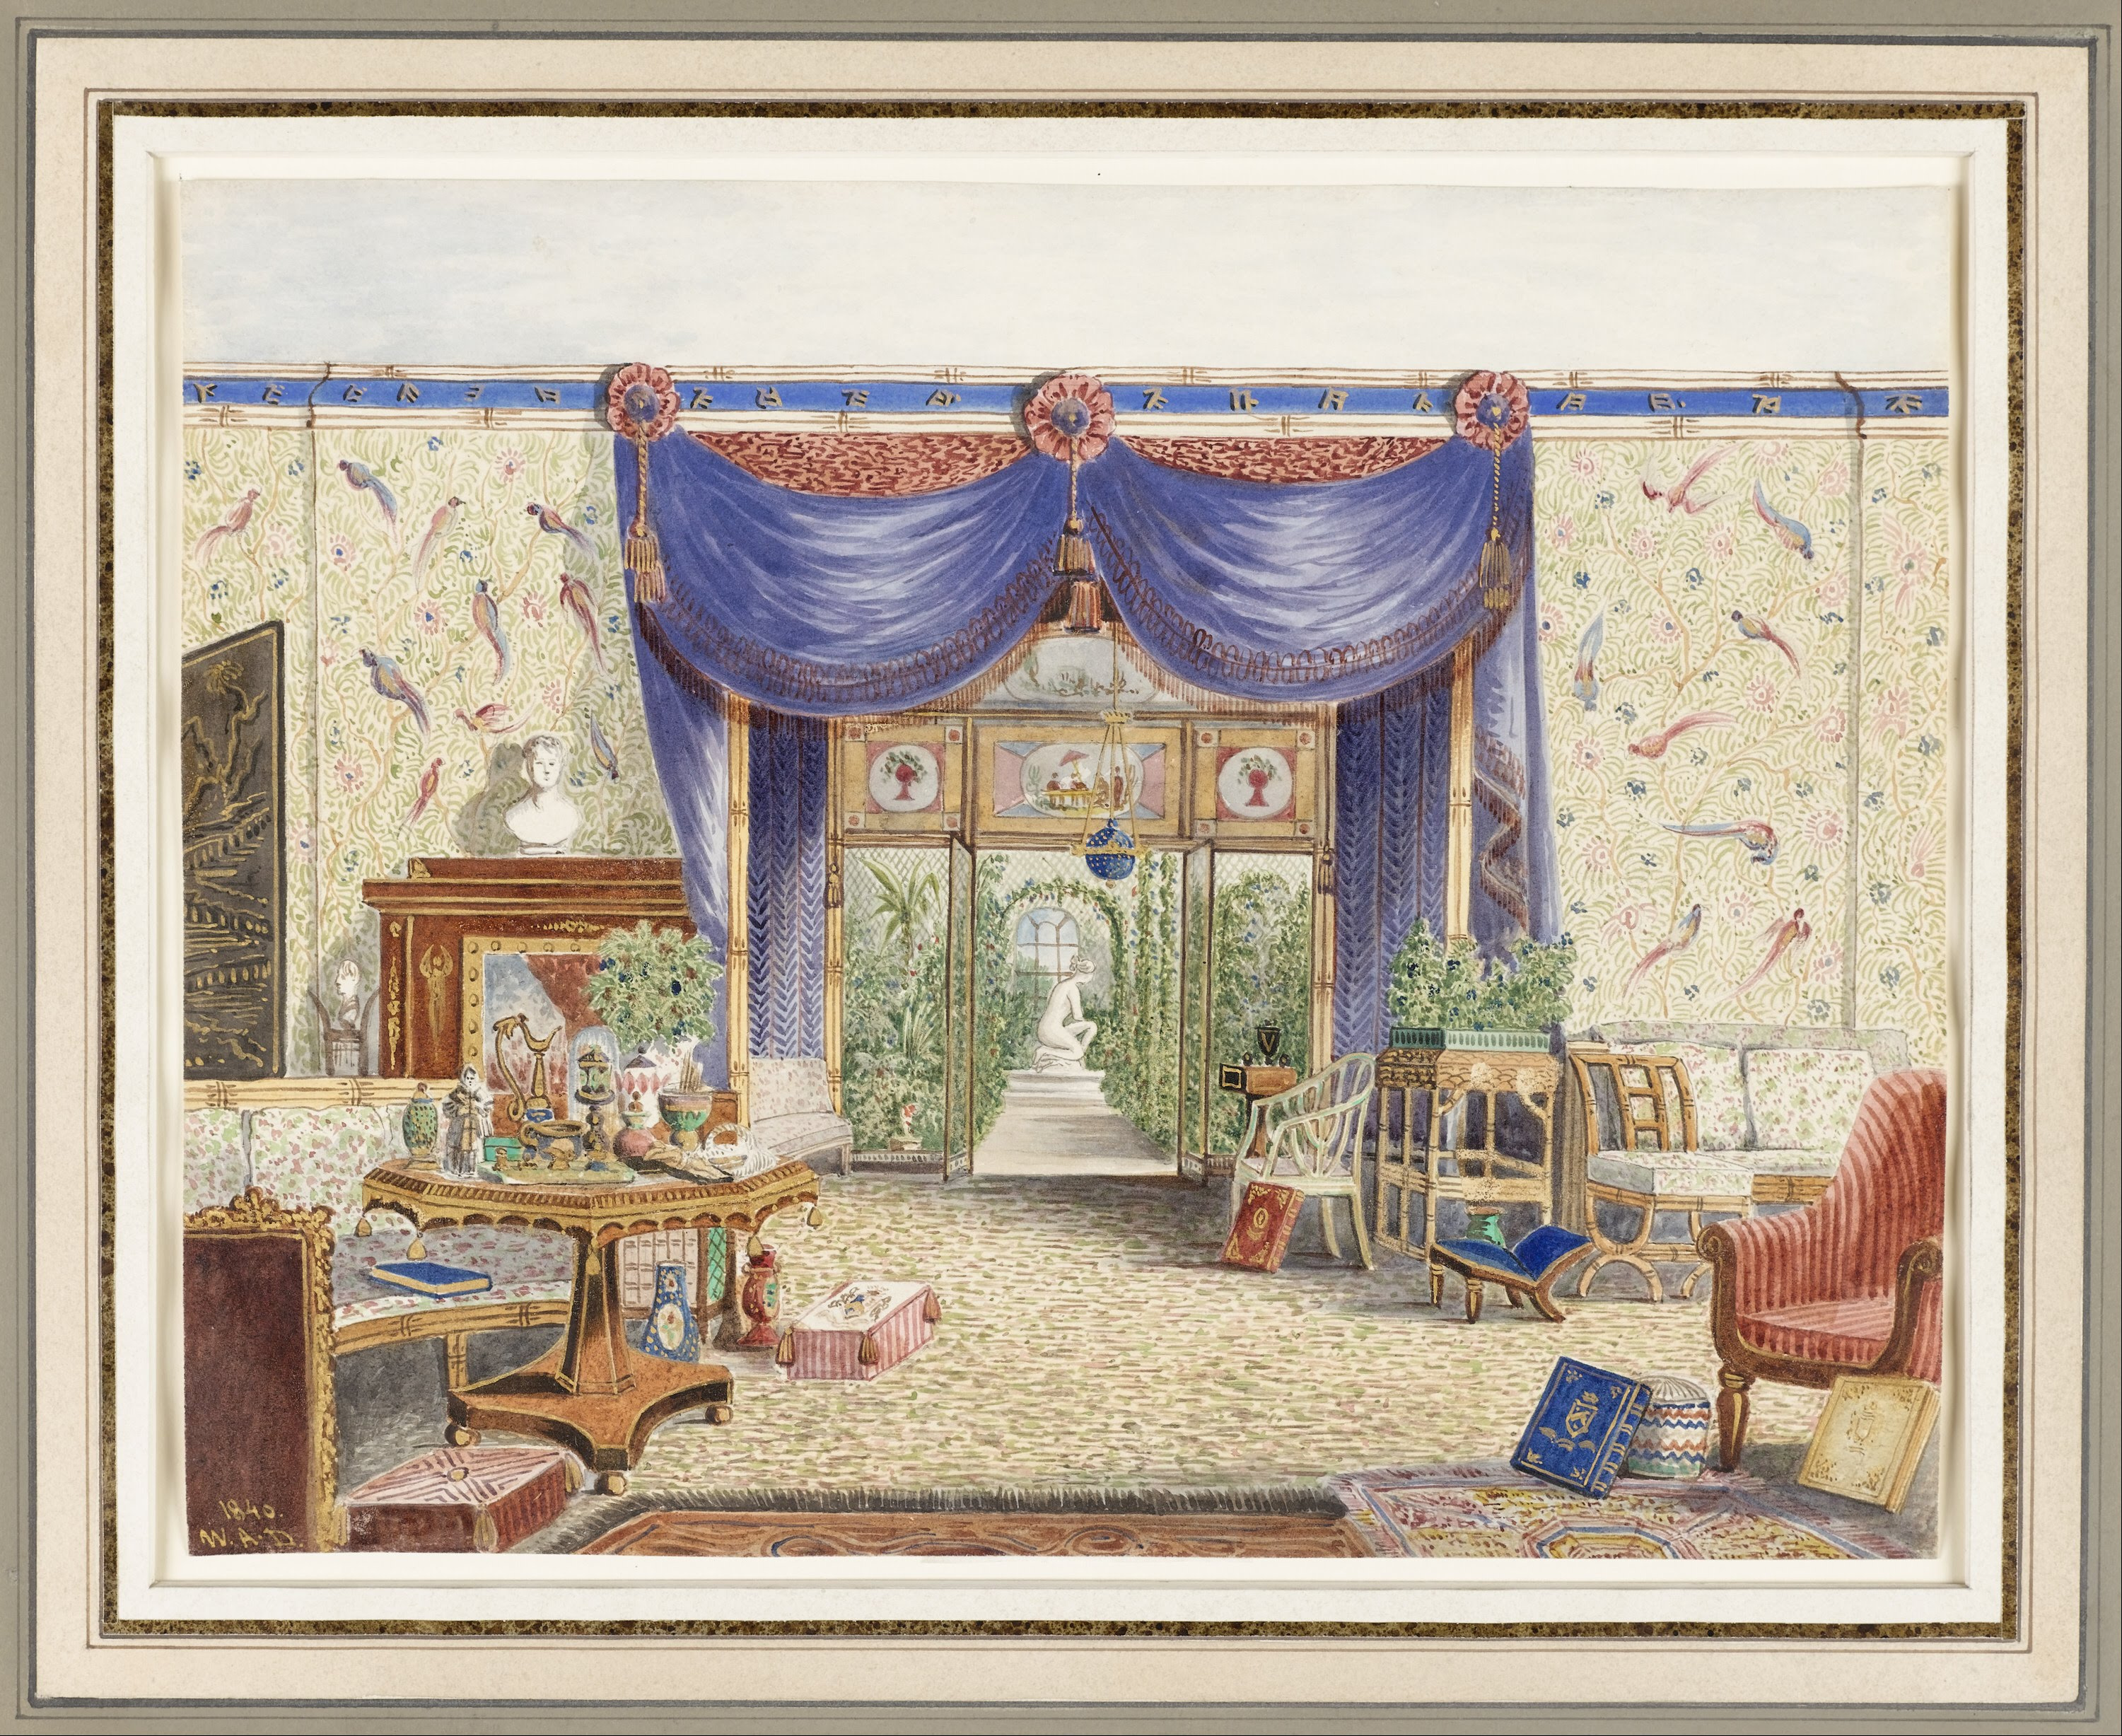 File:William Alfred Delamotte - The Interior of the ... - photo#23